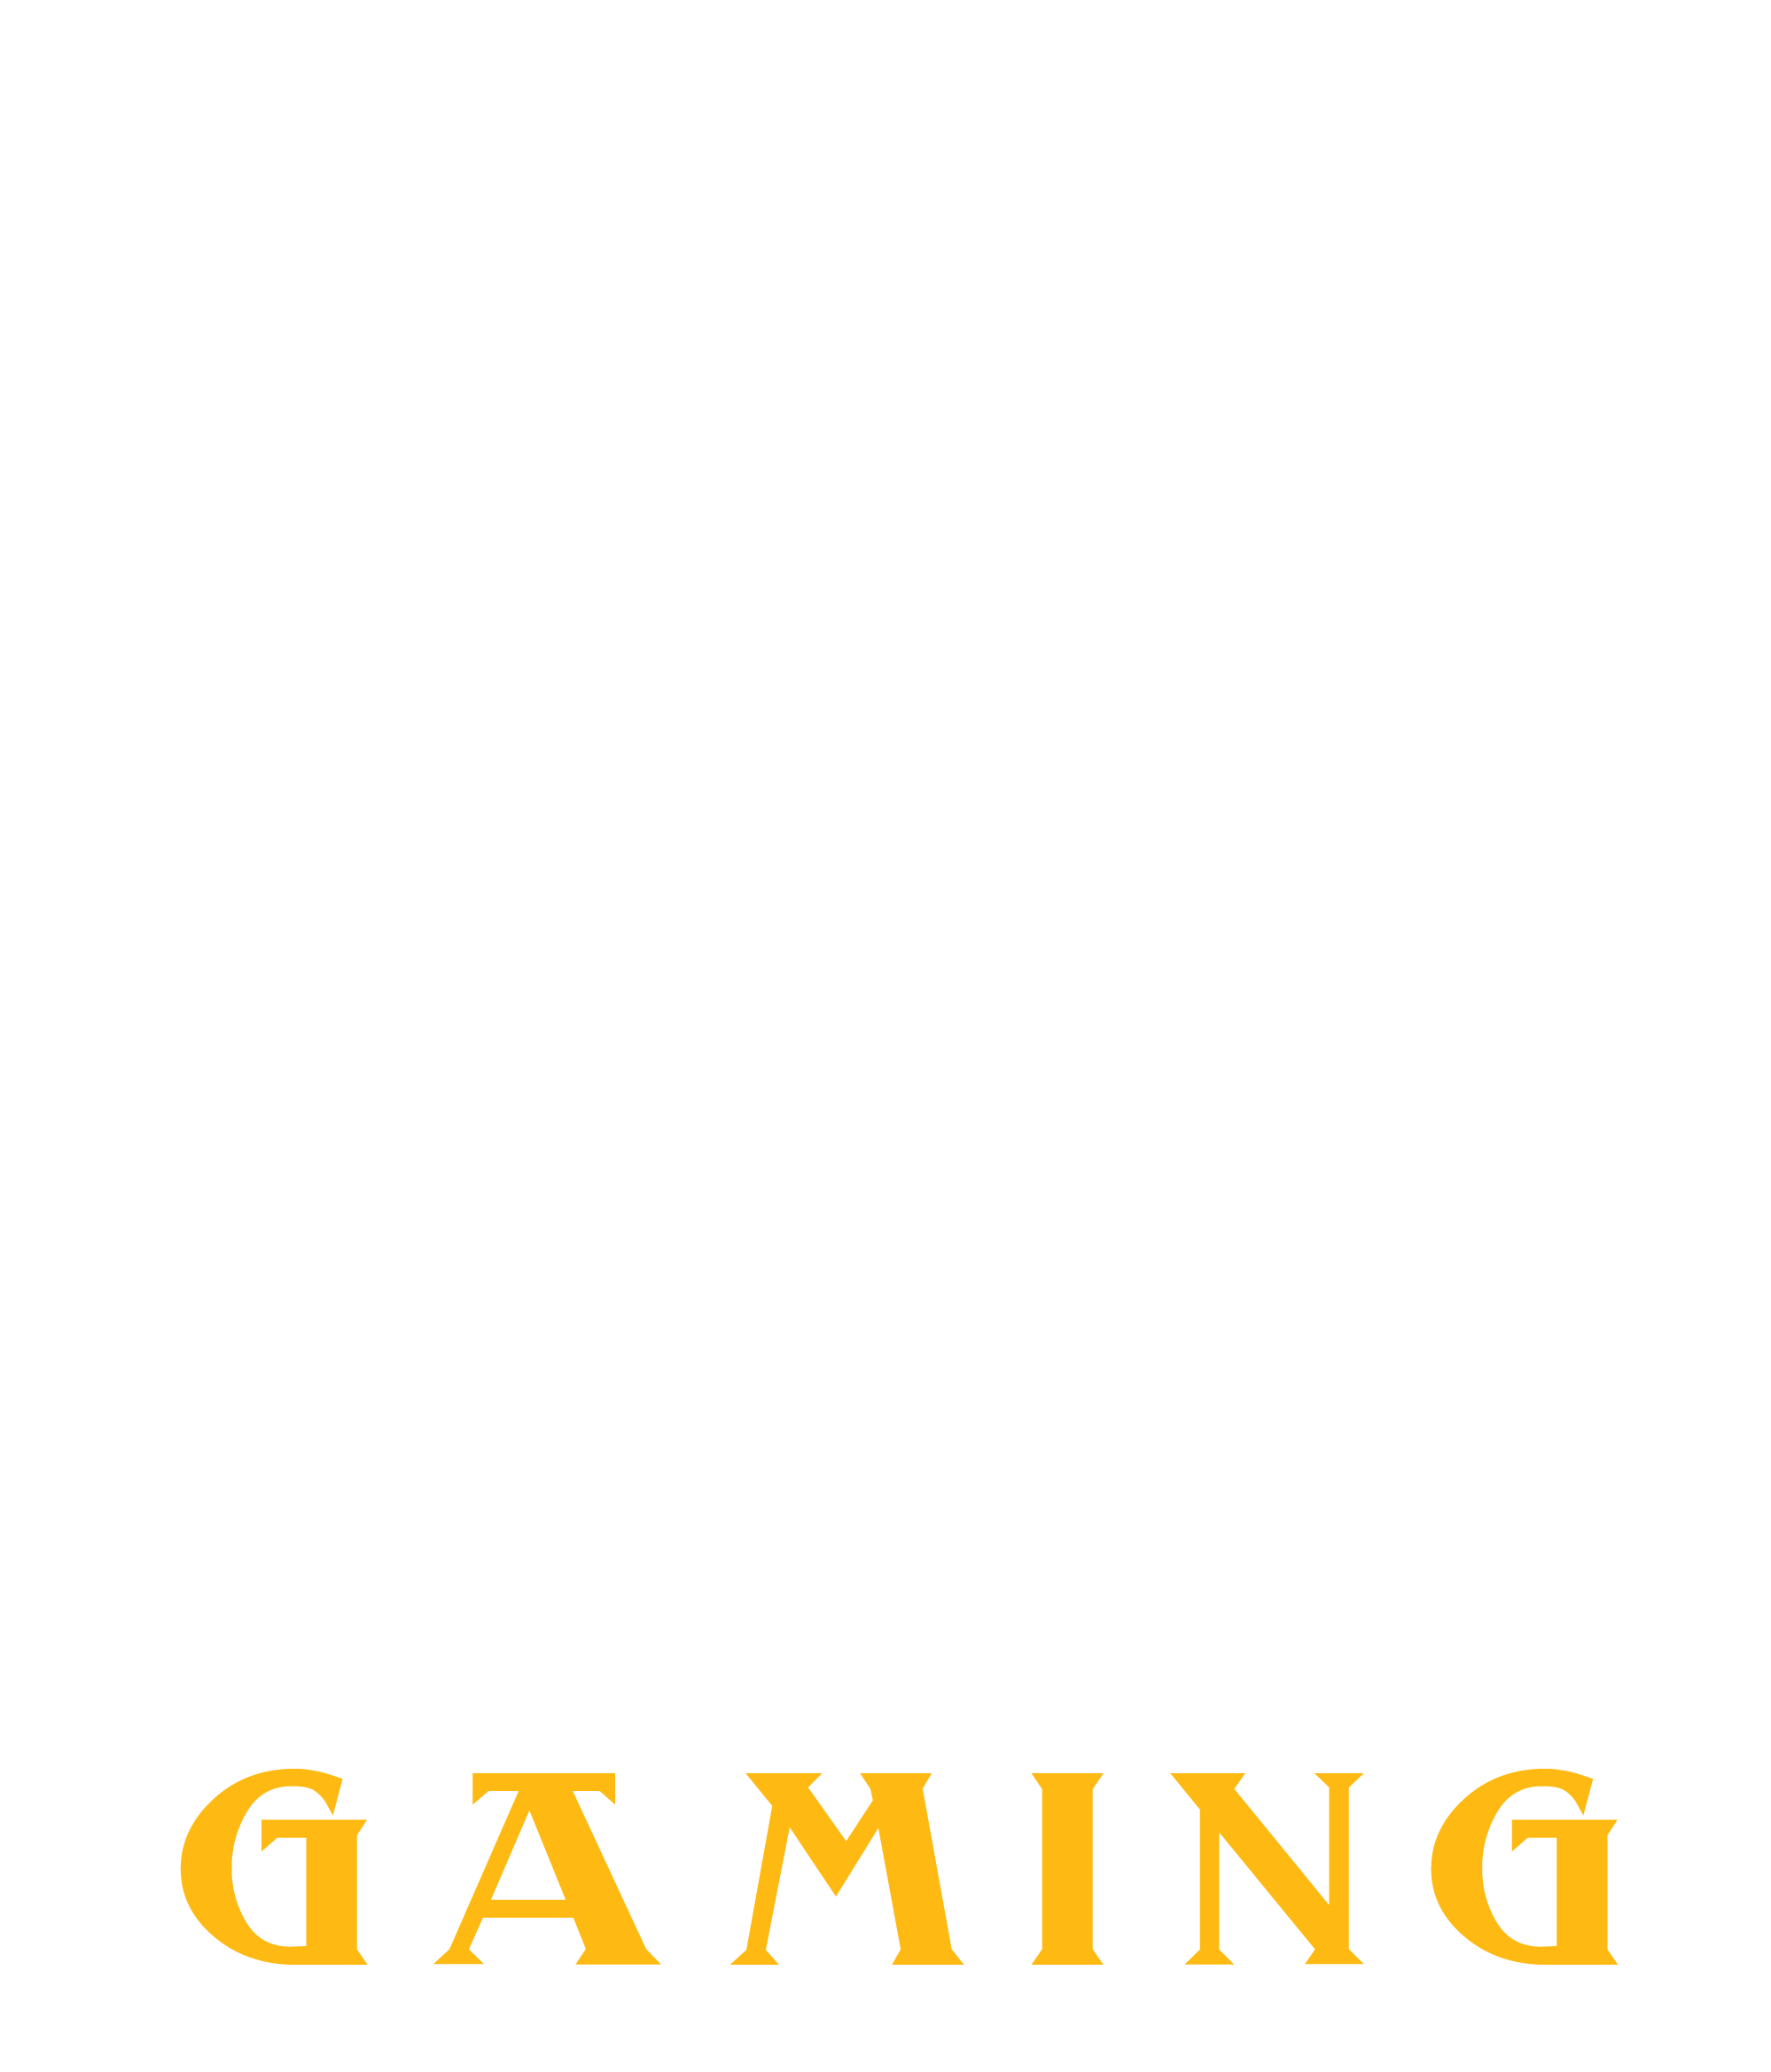 You are currently viewing Monk Gaming Logo